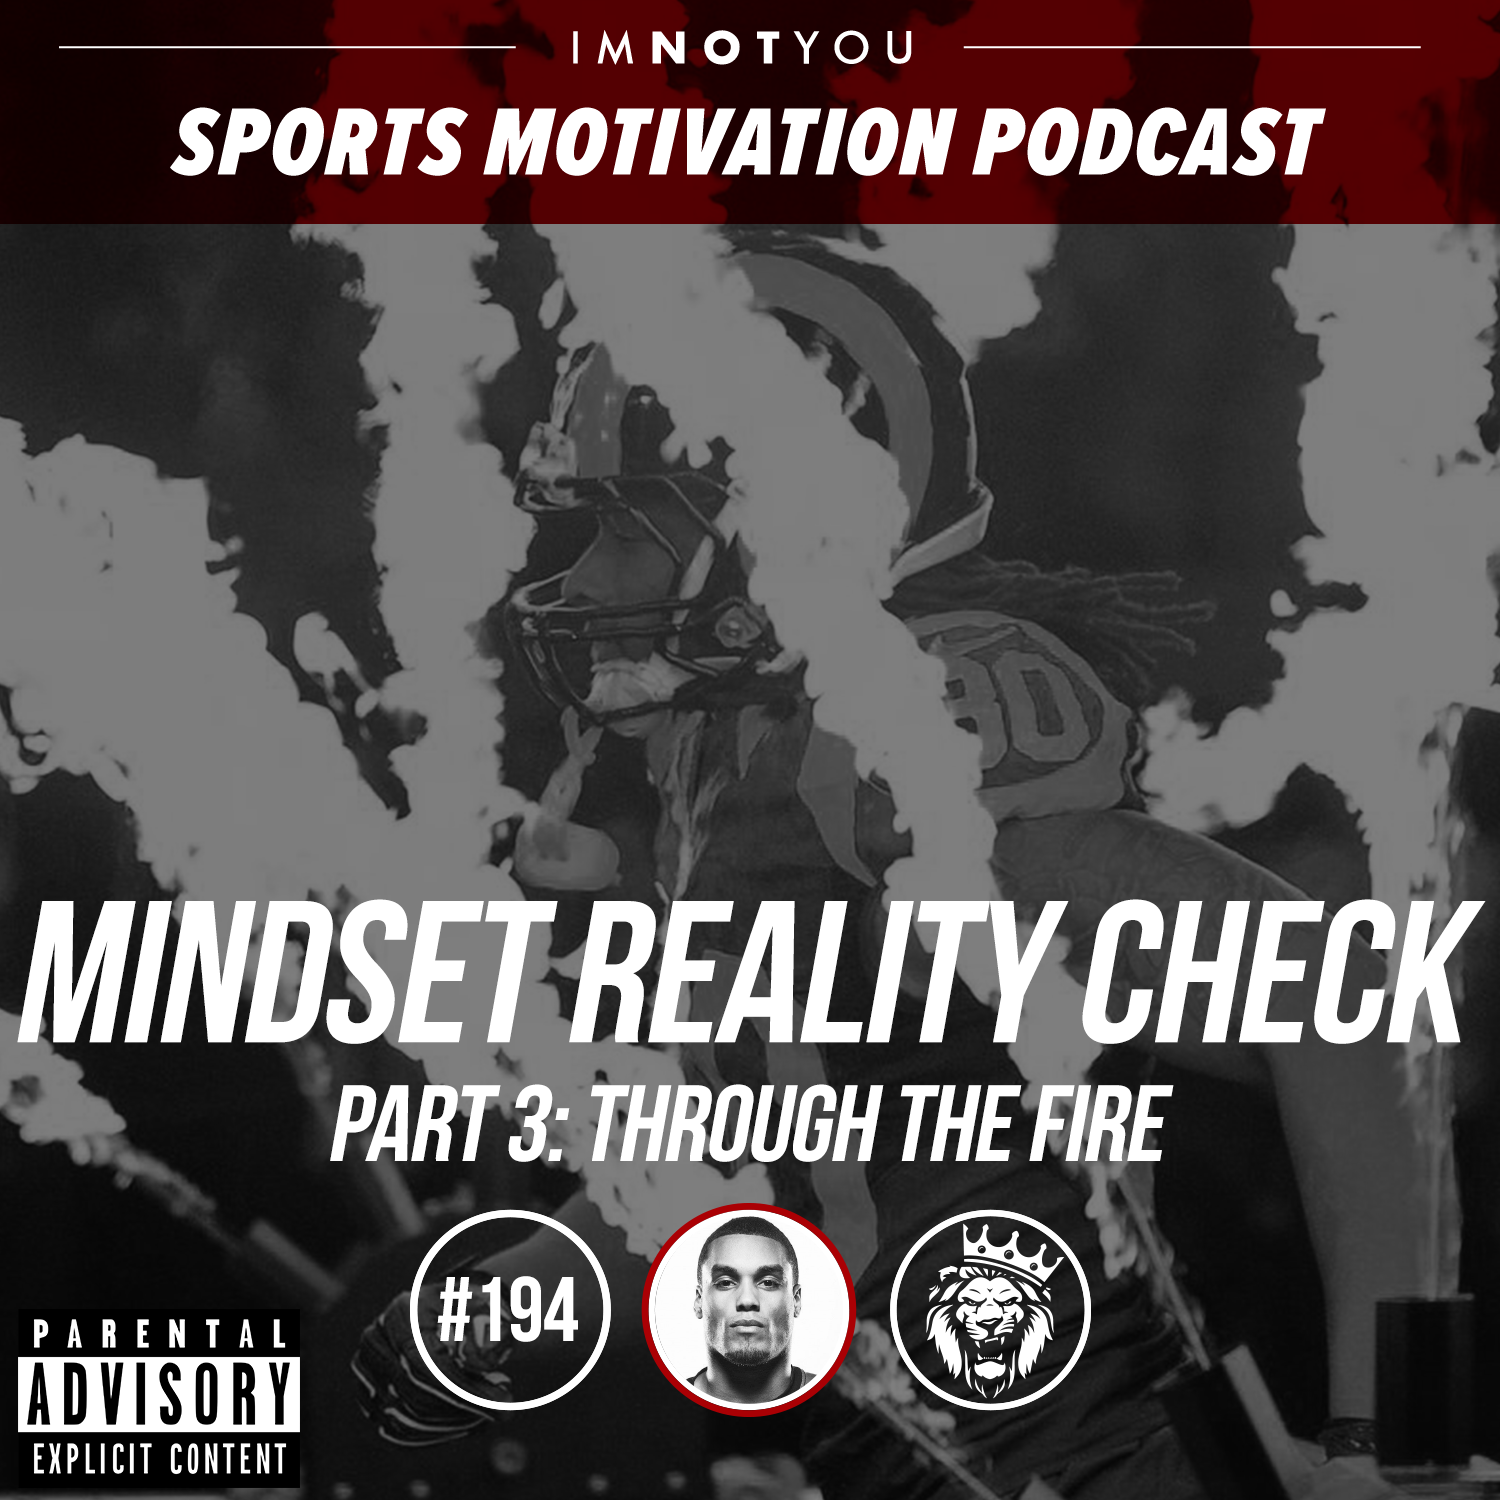 194: Mindset Reality Check Series, Part 3: Through the Fire